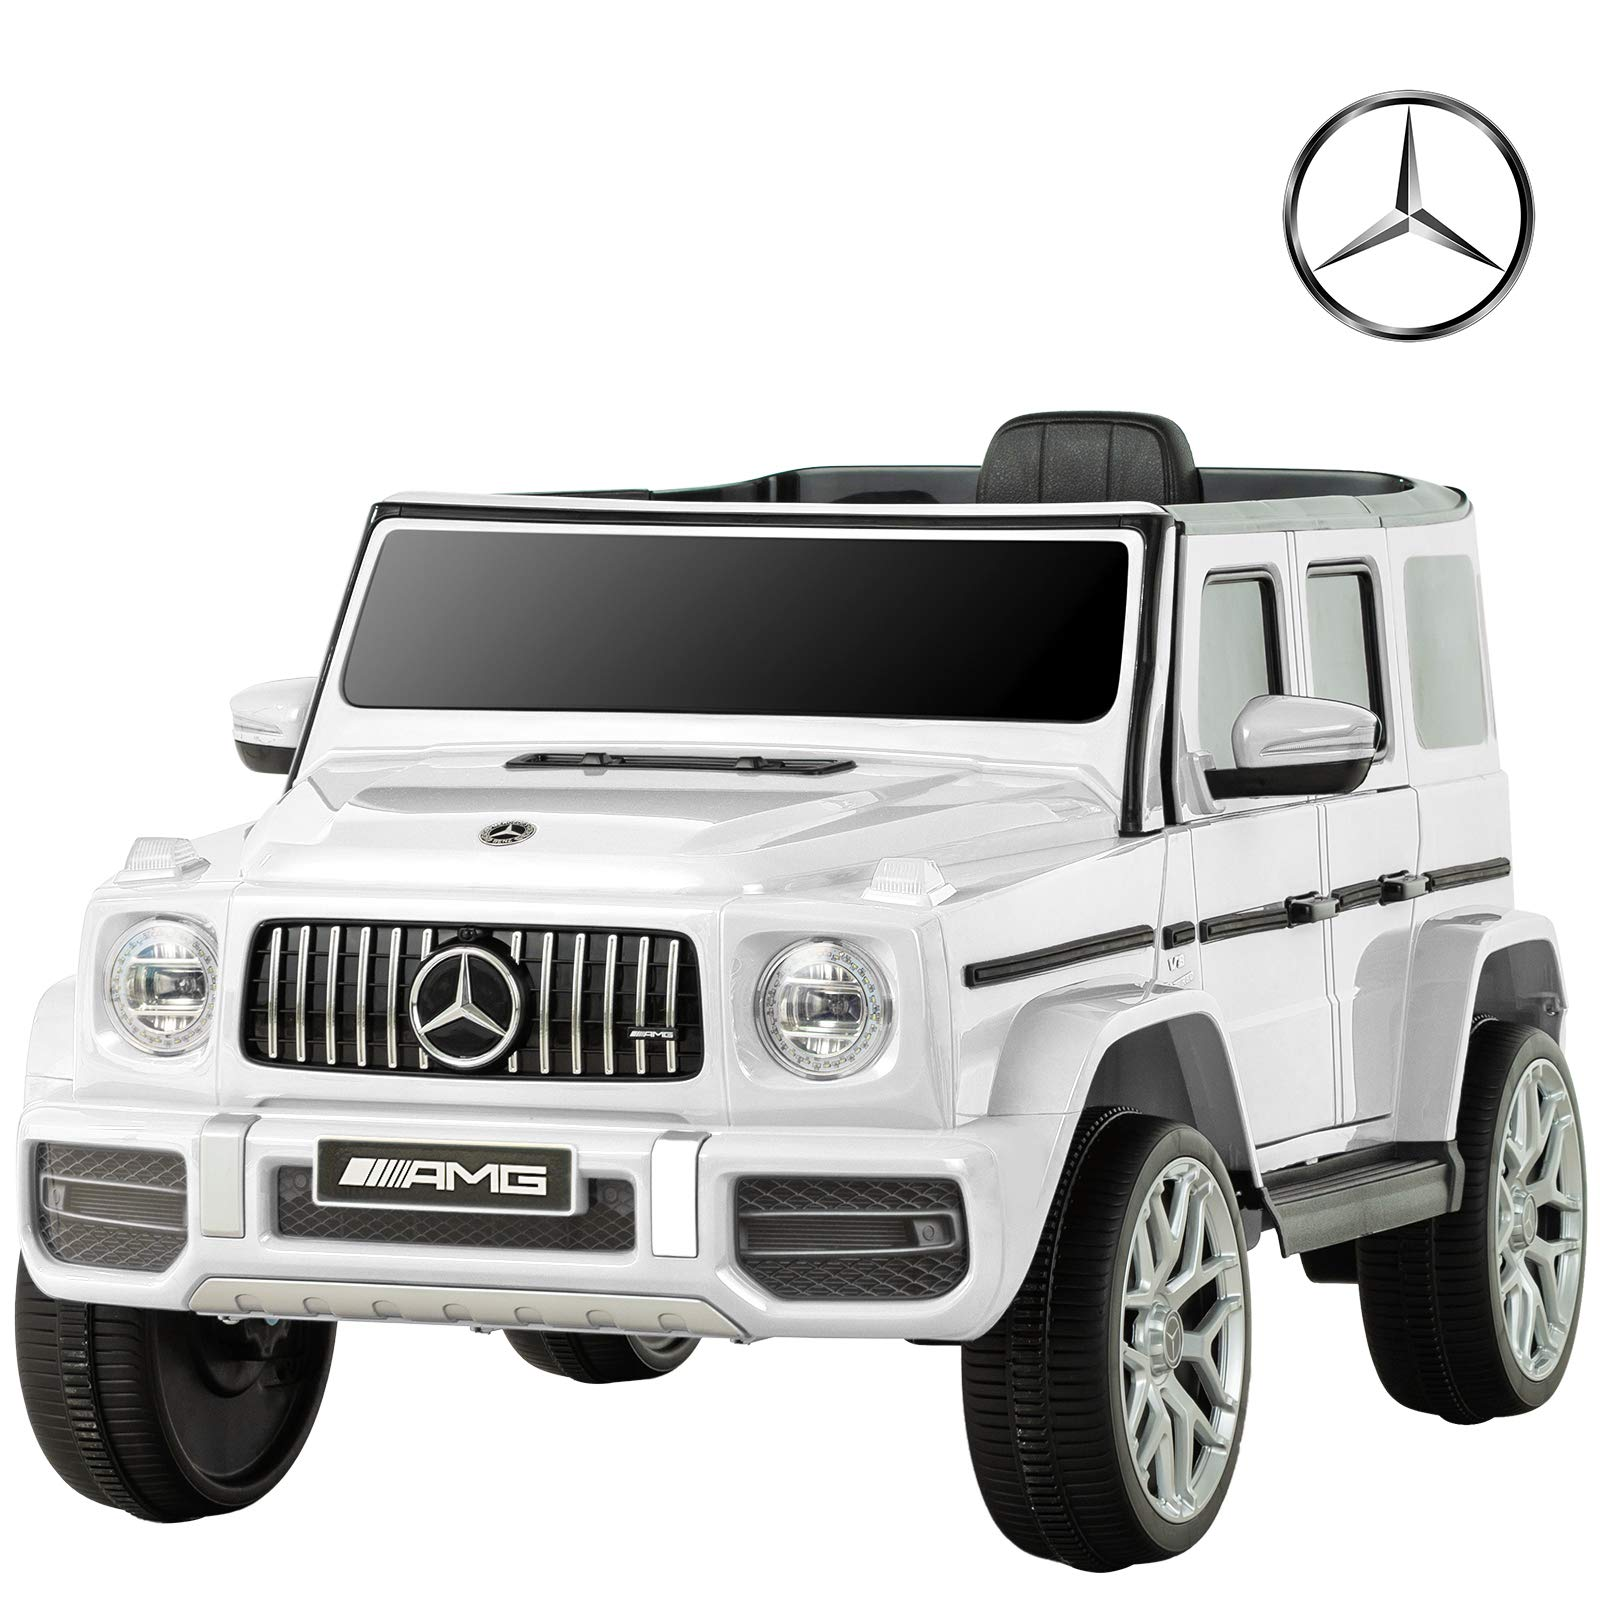 Uenjoy 12V Licensed Mercedes-Benz G63 Kids Ride On Car Electric Cars Motorized Vehicles for Girls,Boys, with Remote Control, Music, Horn, Spring Suspension, Safety Lock, LED Light,AUX, White